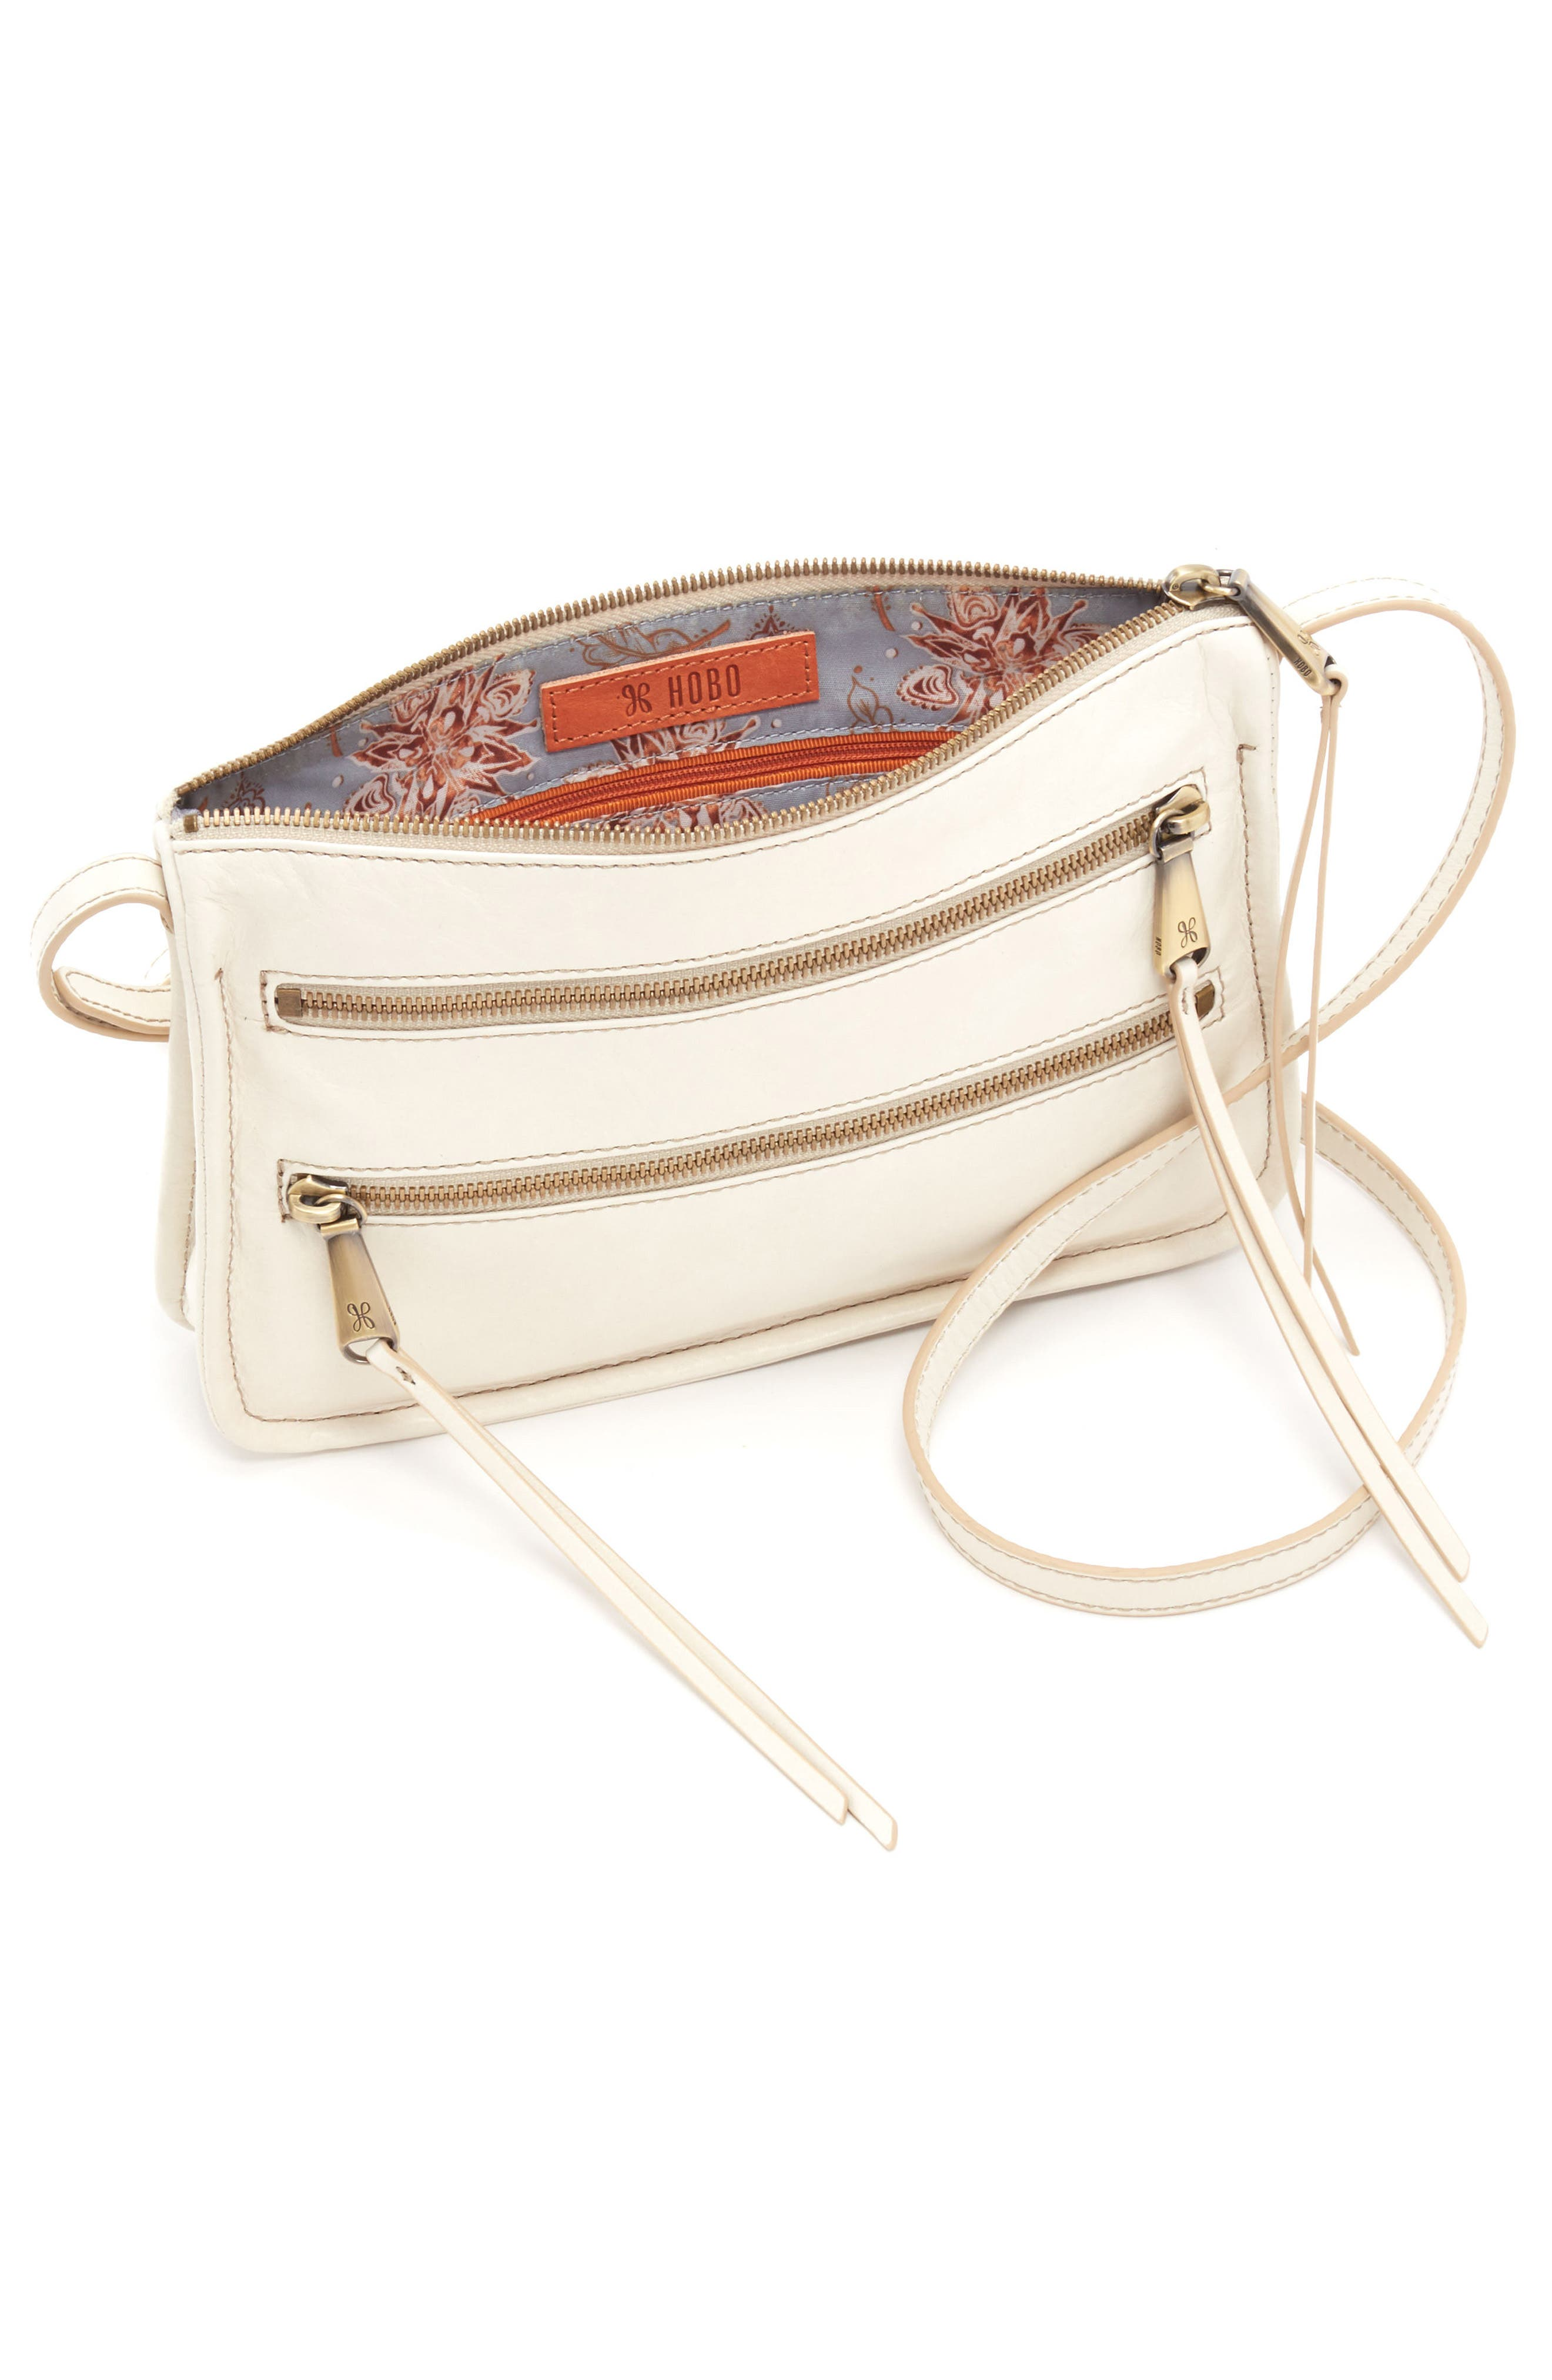 Mission Crossbody Bag,                             Alternate thumbnail 3, color,                             120